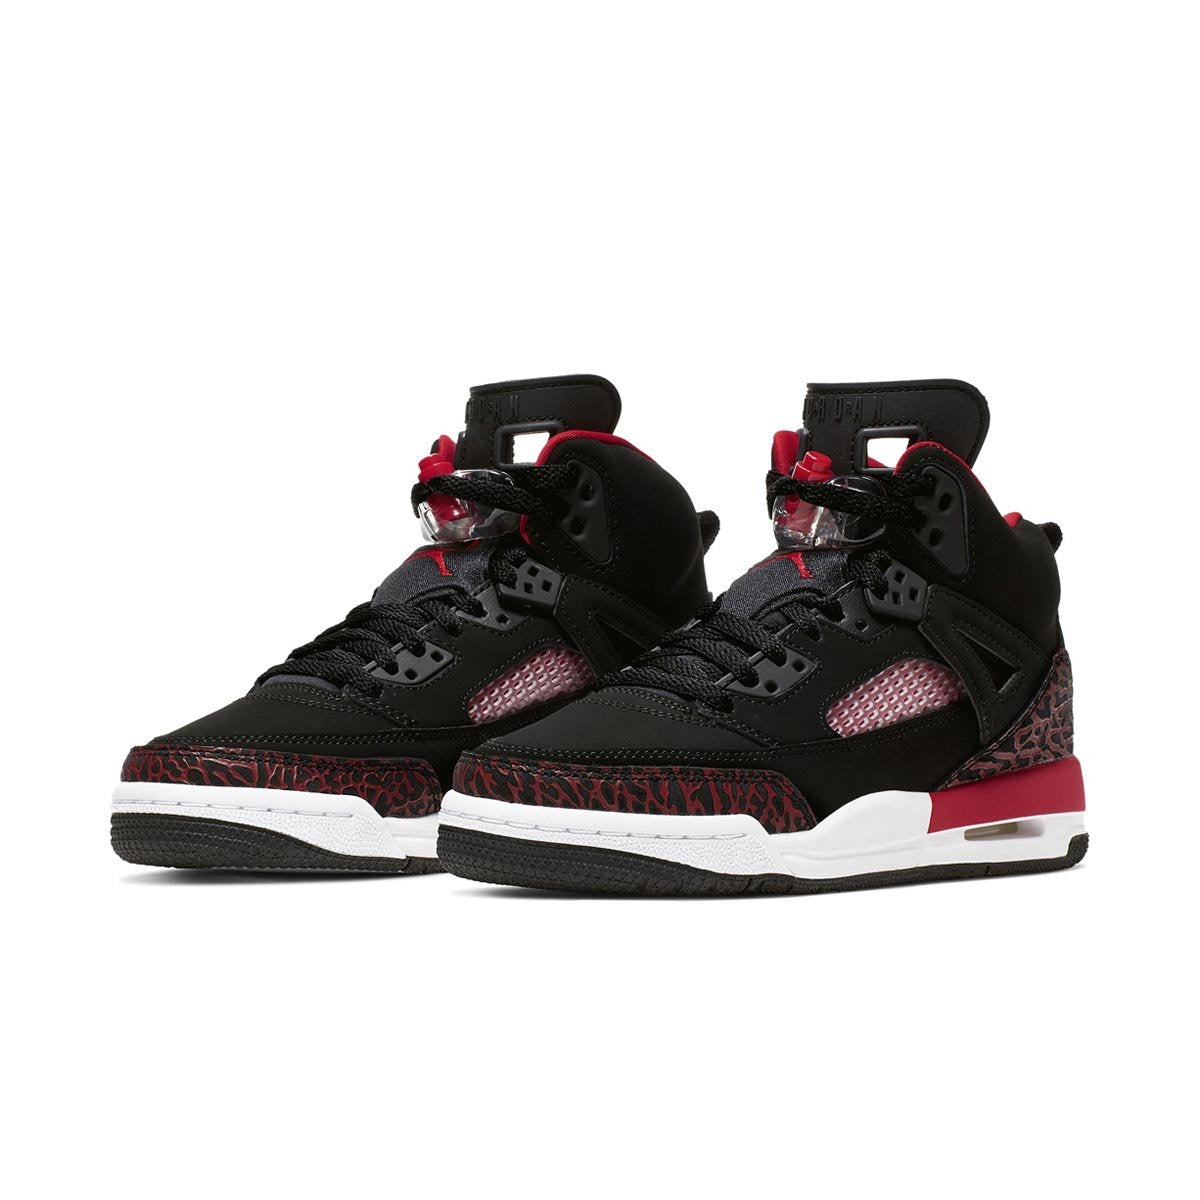 Big Kids Boy's Jordan Spizike (GS) Shoe